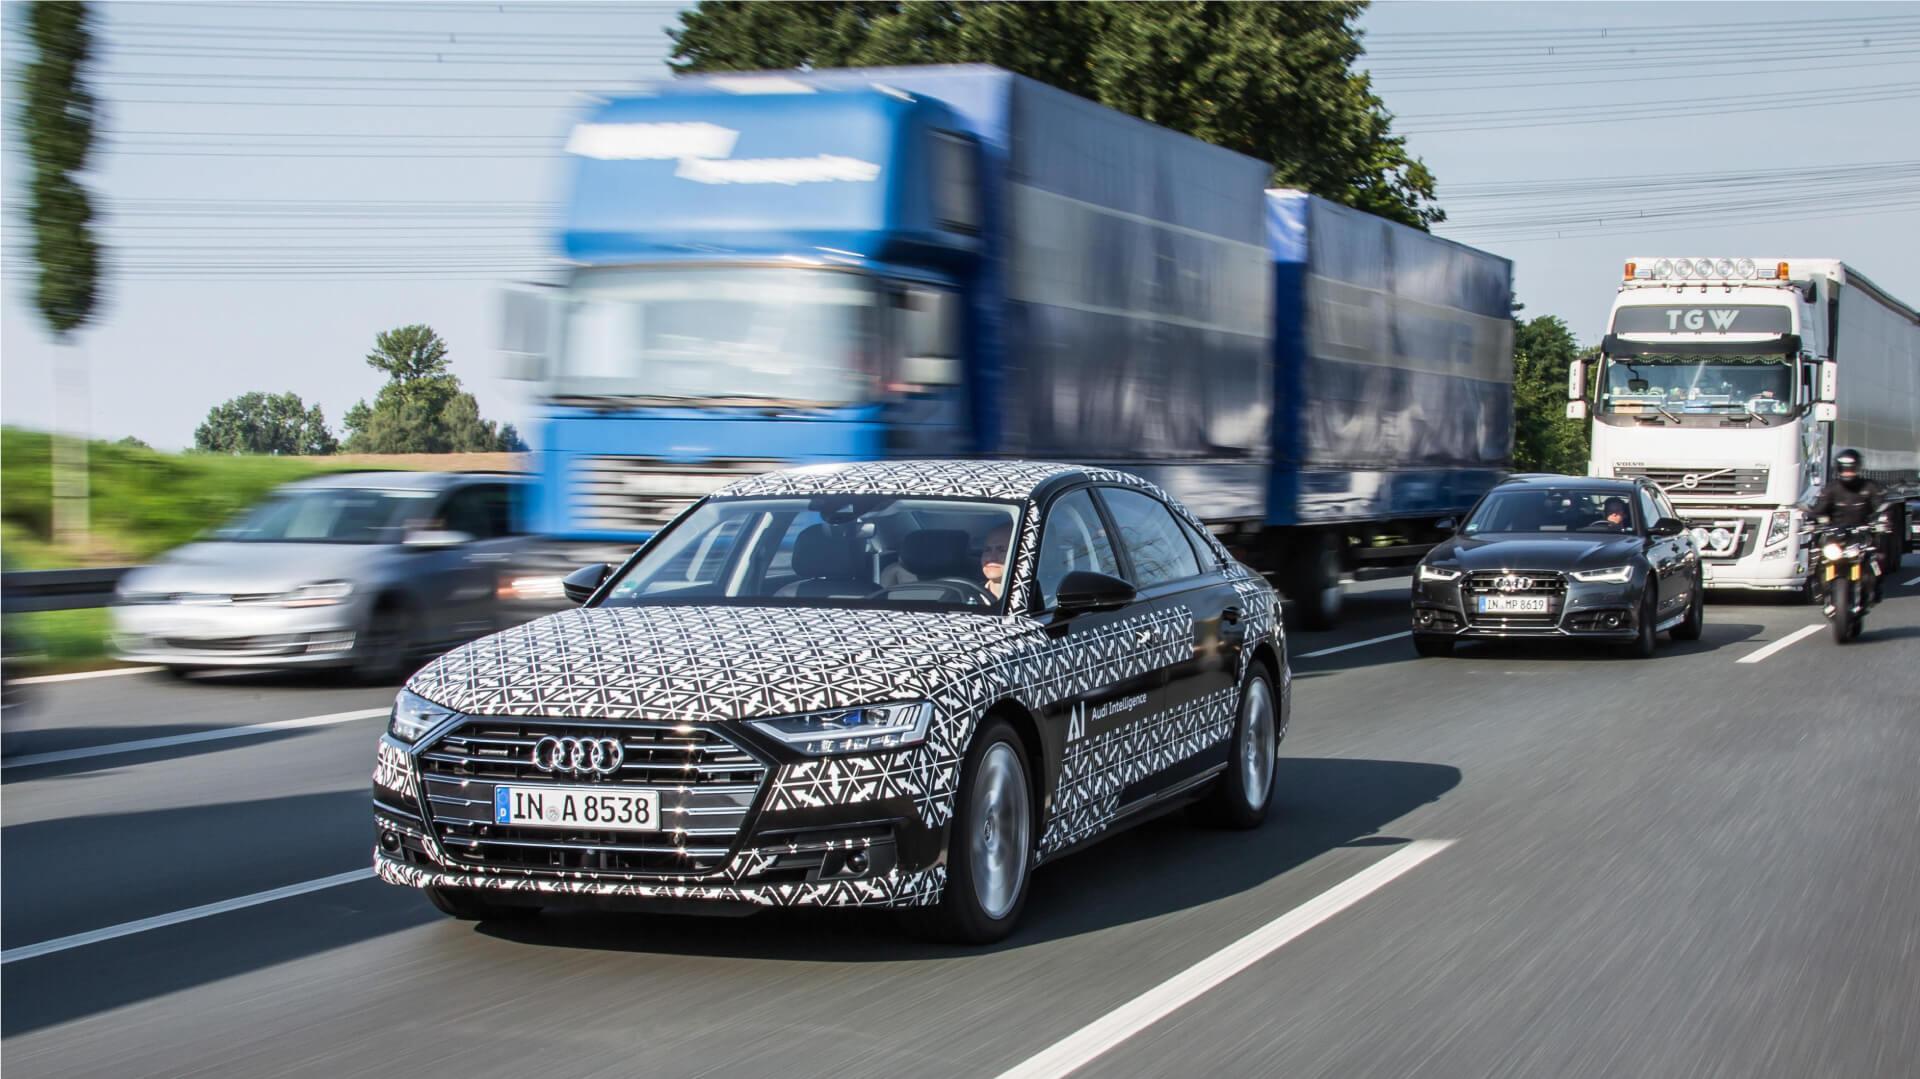 Audi A8 Electric Level 3 Test drive